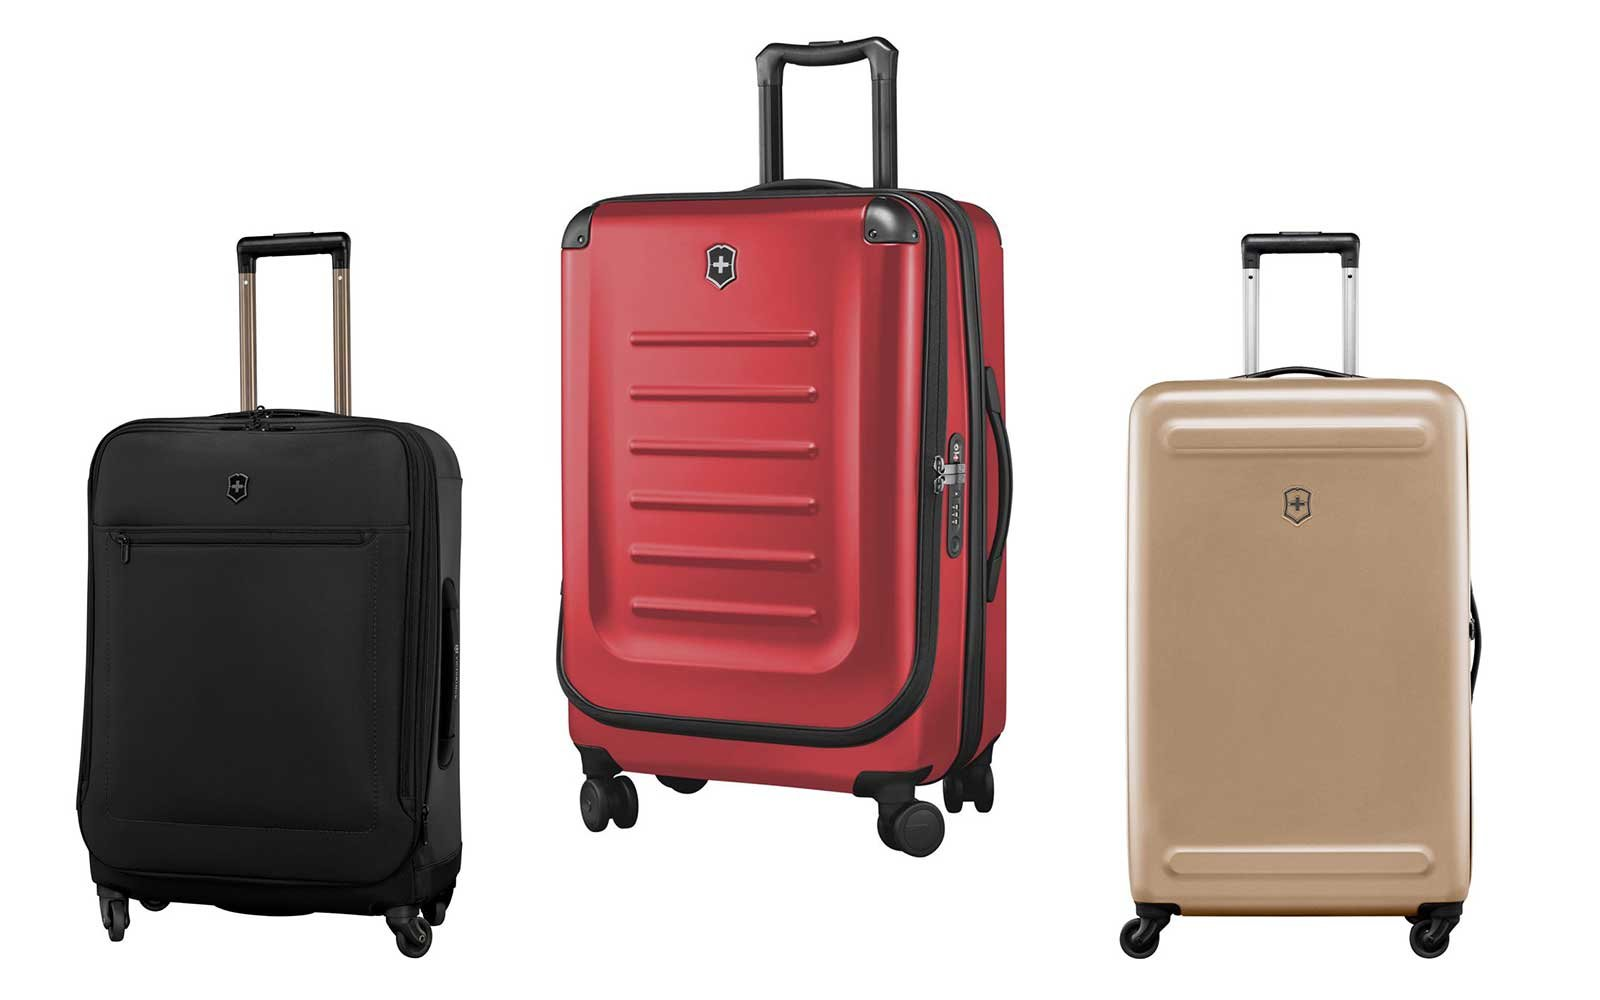 Victorinox Luggage and Suitcases